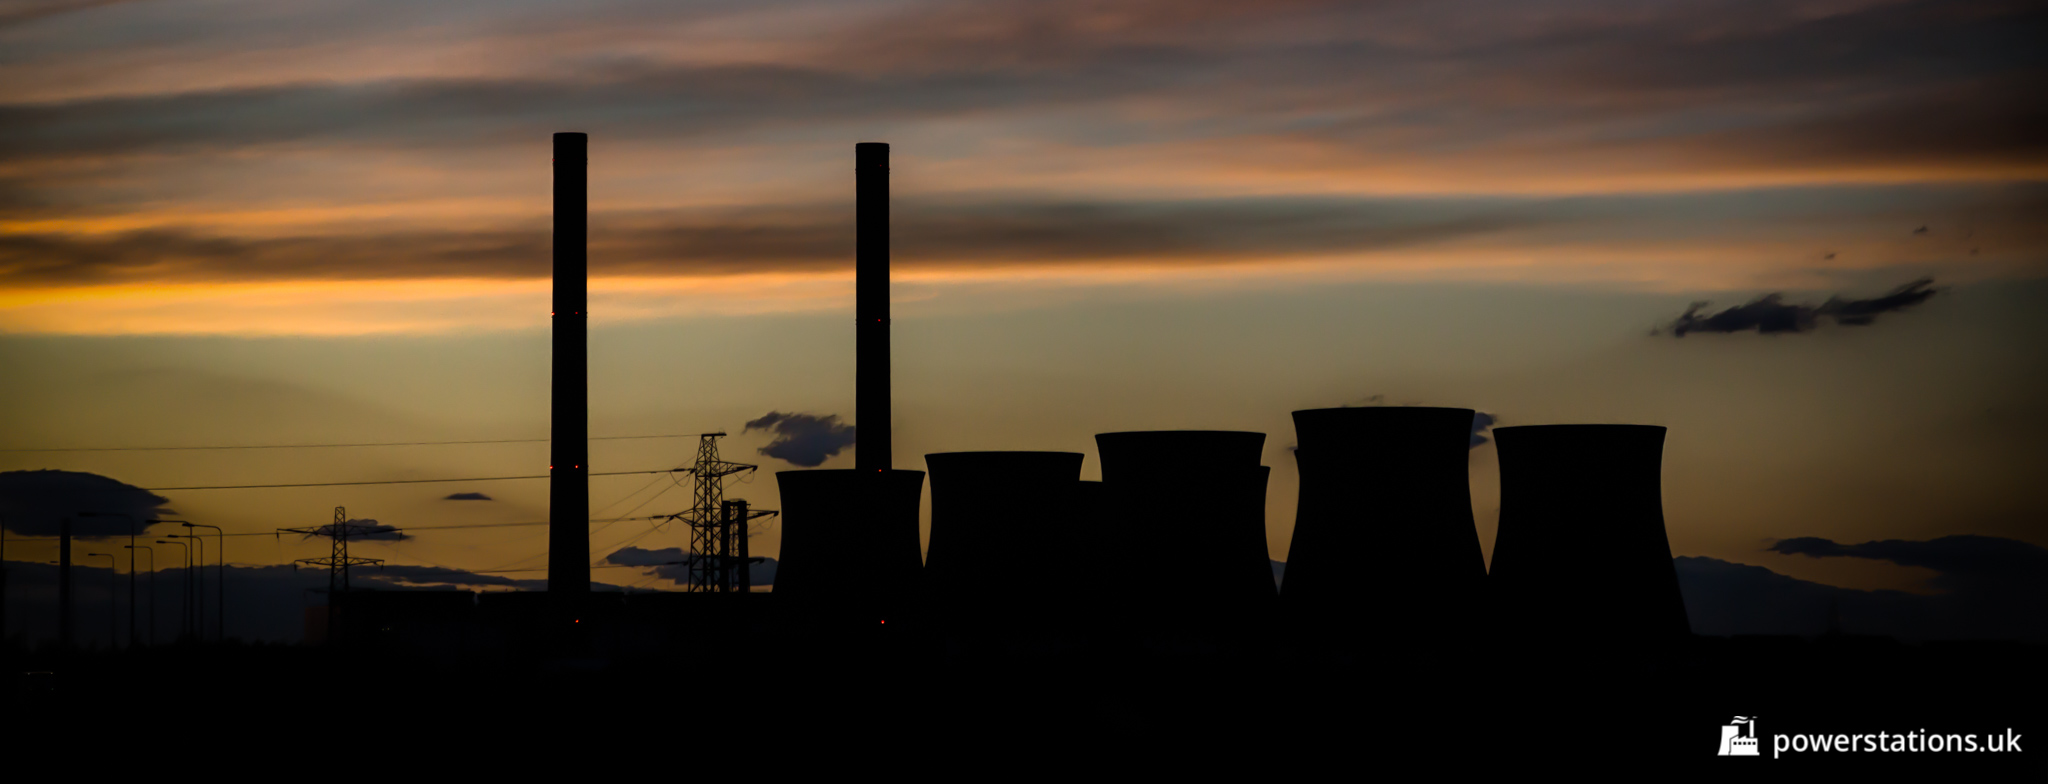 The sun sets behind the dormant Ferrybridge C Power Station